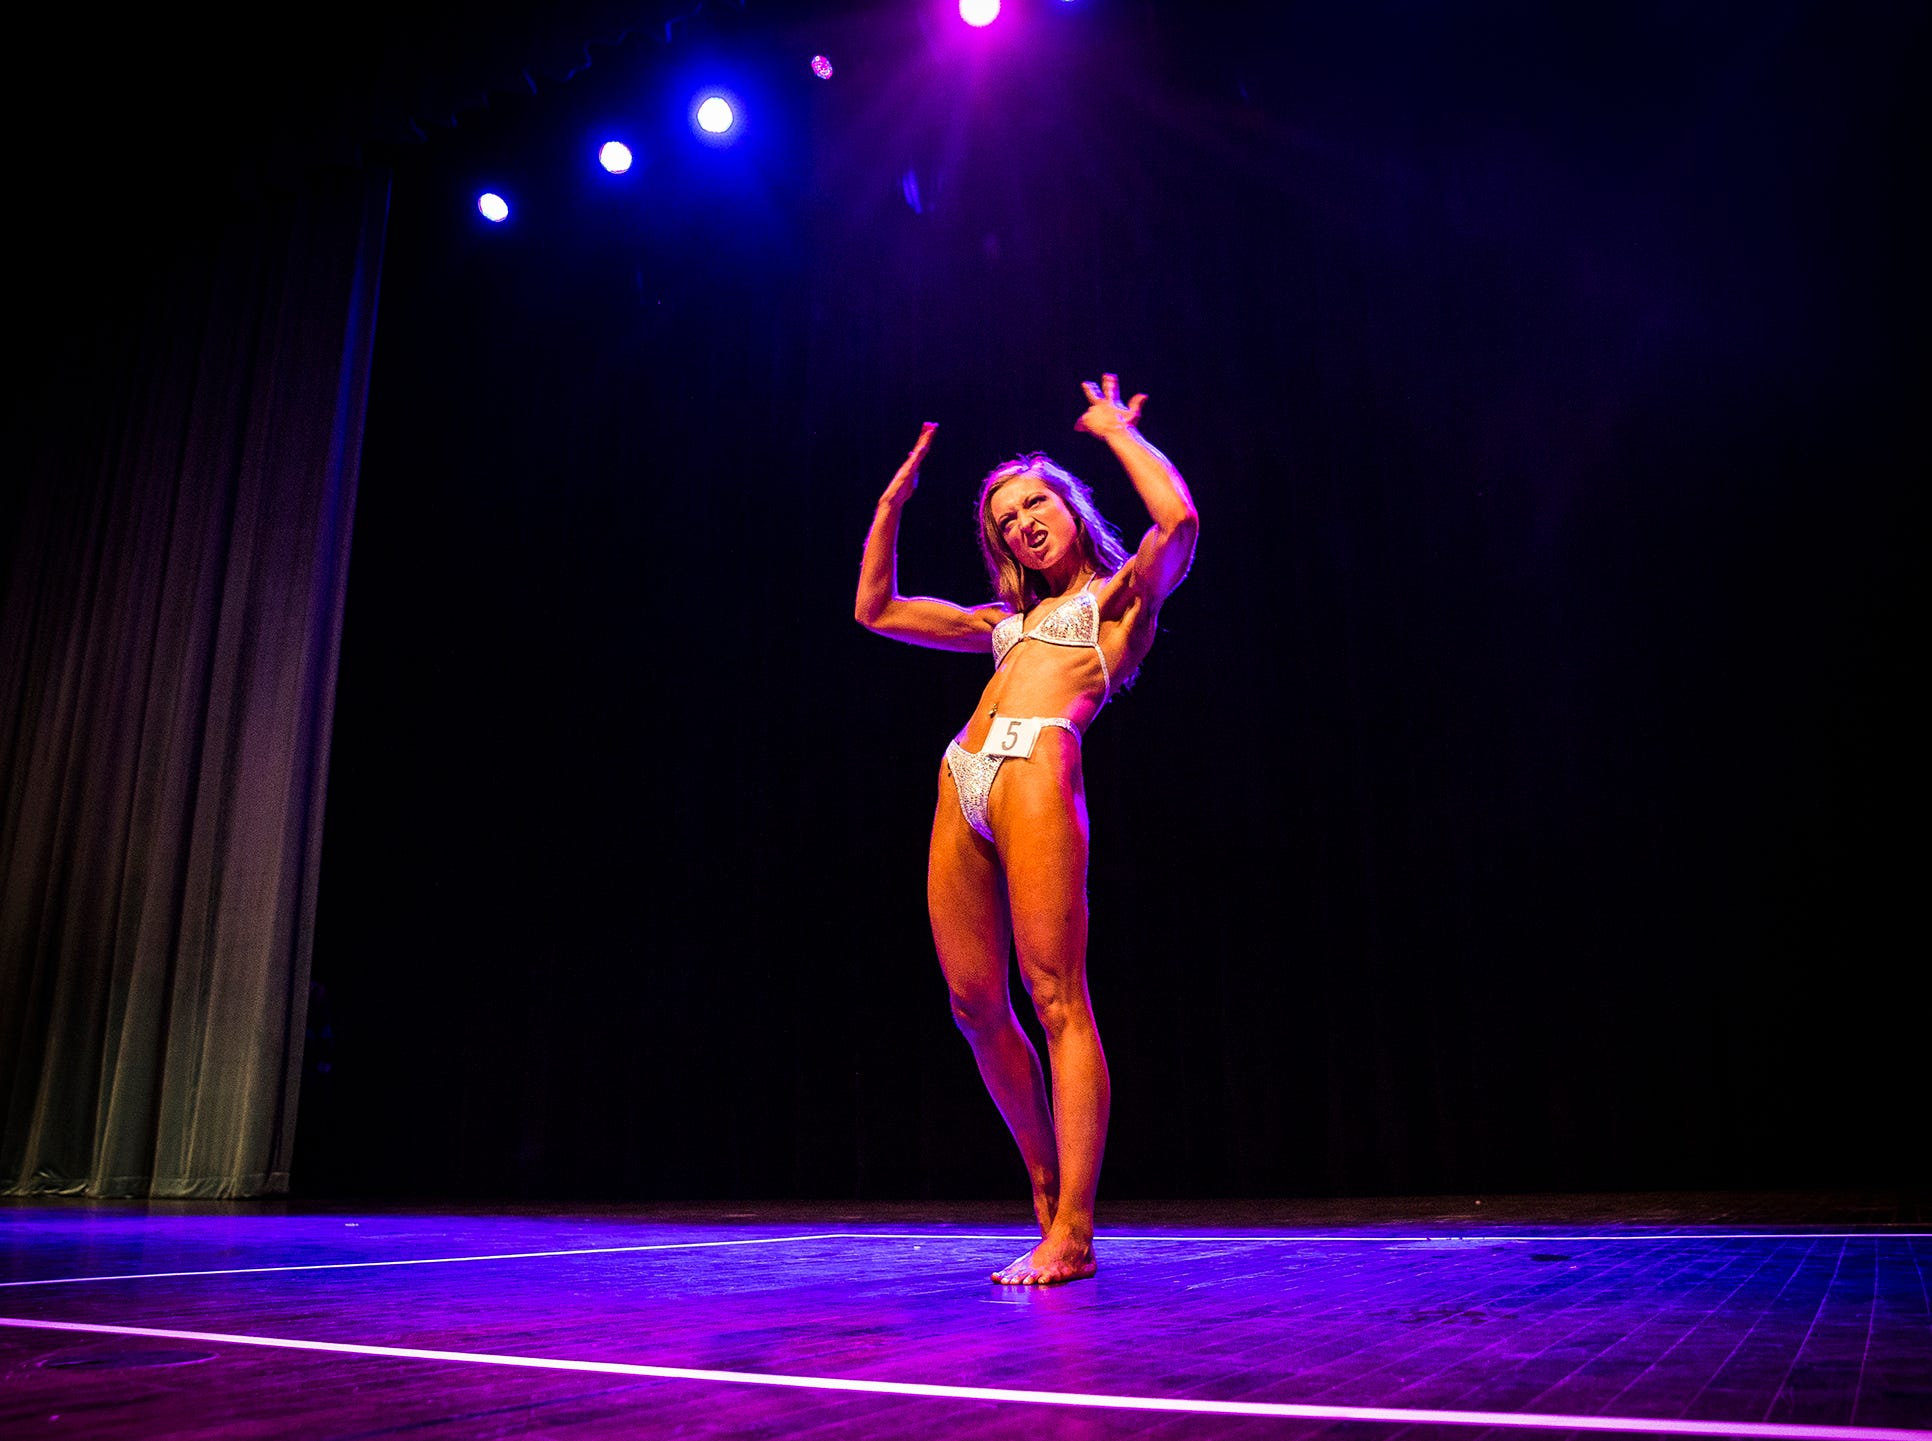 Sixteen amateur bodybuilders, nine women and seven men, competed in the 2019 Mr. And Ms. Ball State bodybuilding competition at Emens Auditorium Thursday night. Returning champion Mike Breitung and newcomer Olivia Mason were awarded this year's titles.